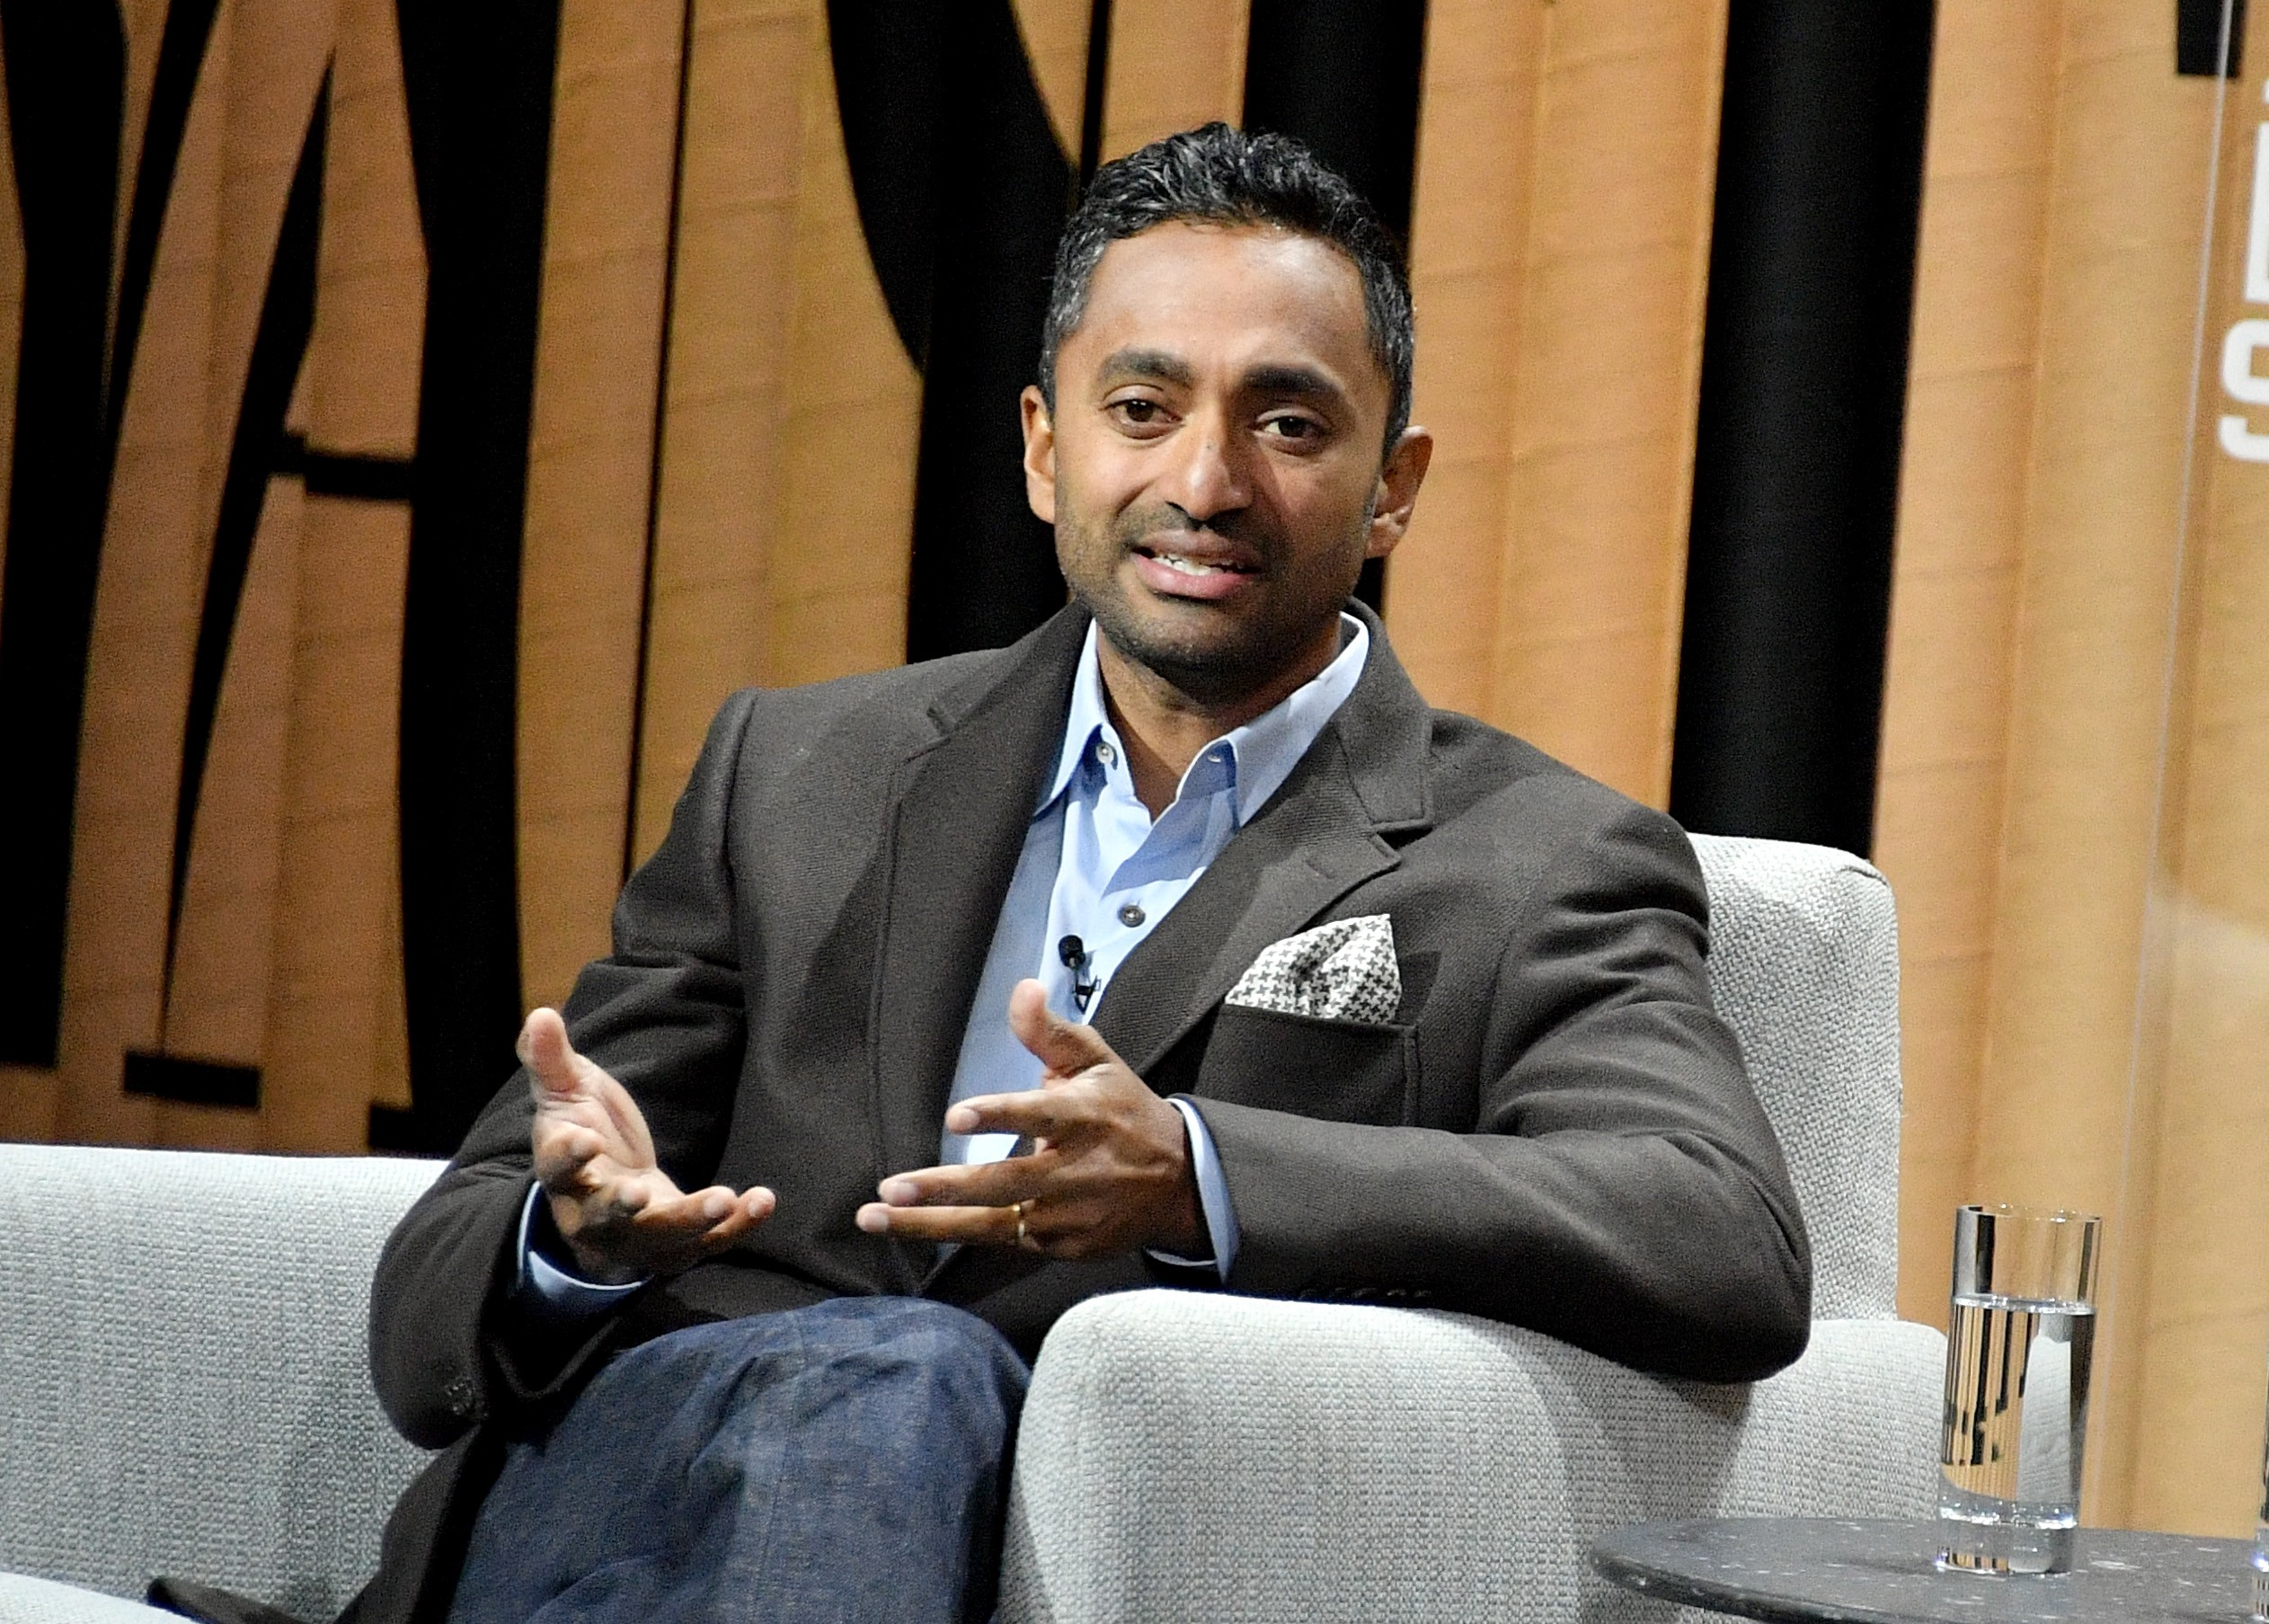 """Founder/CEO of Social Capital, Chamath Palihapitiya, speaks onstage during """"The State of the Valley: Where's the Juice?"""" at t"""